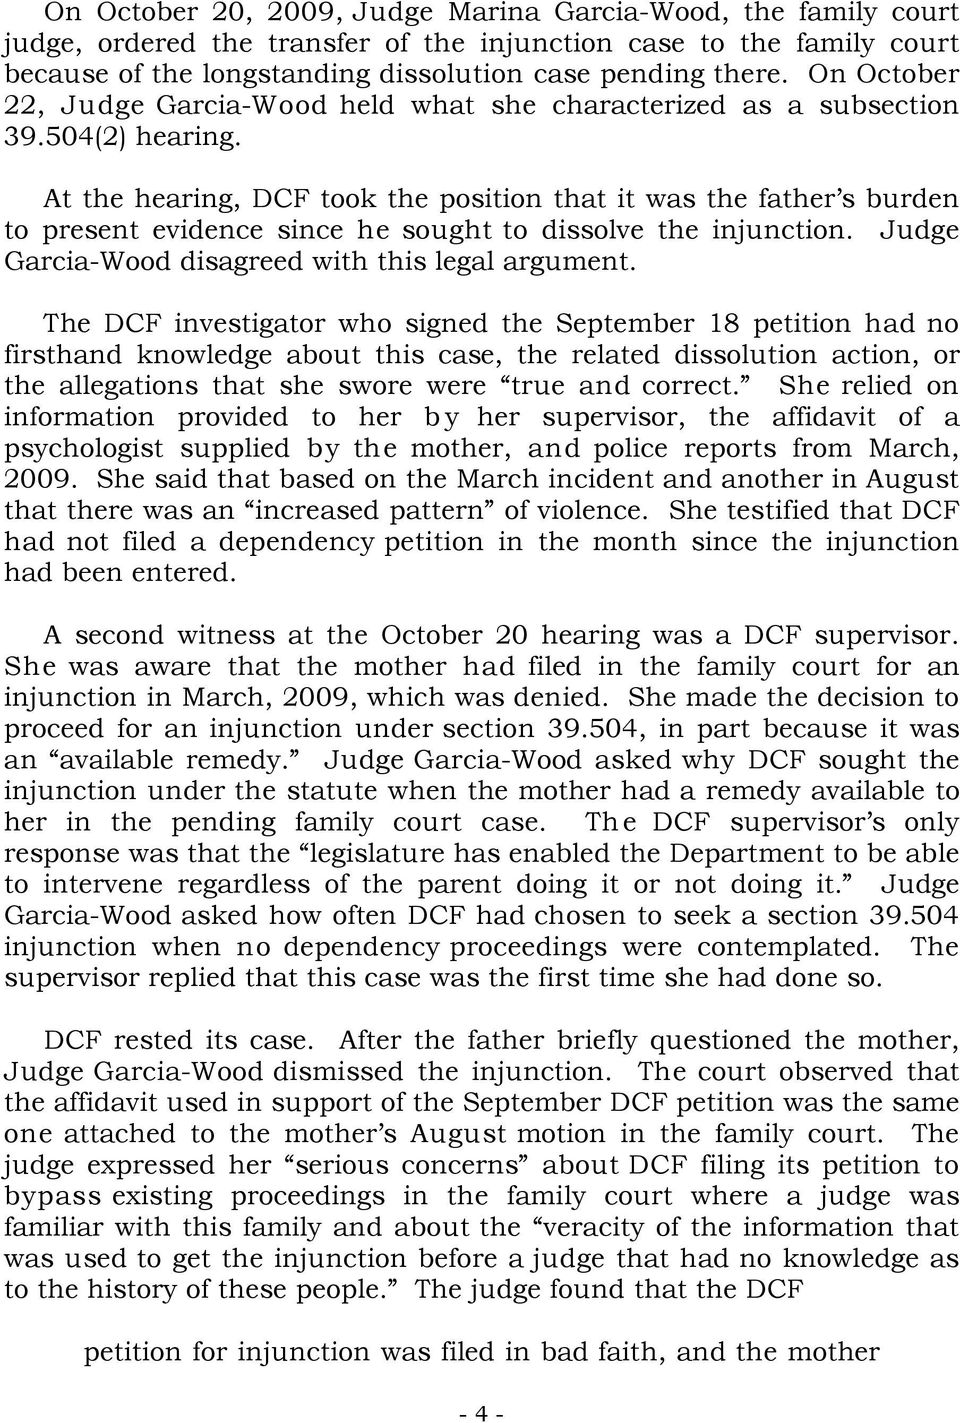 At the hearing, DCF took the position that it was the father s burden to present evidence since he sought to dissolve the injunction. Judge Garcia-Wood disagreed with this legal argument.